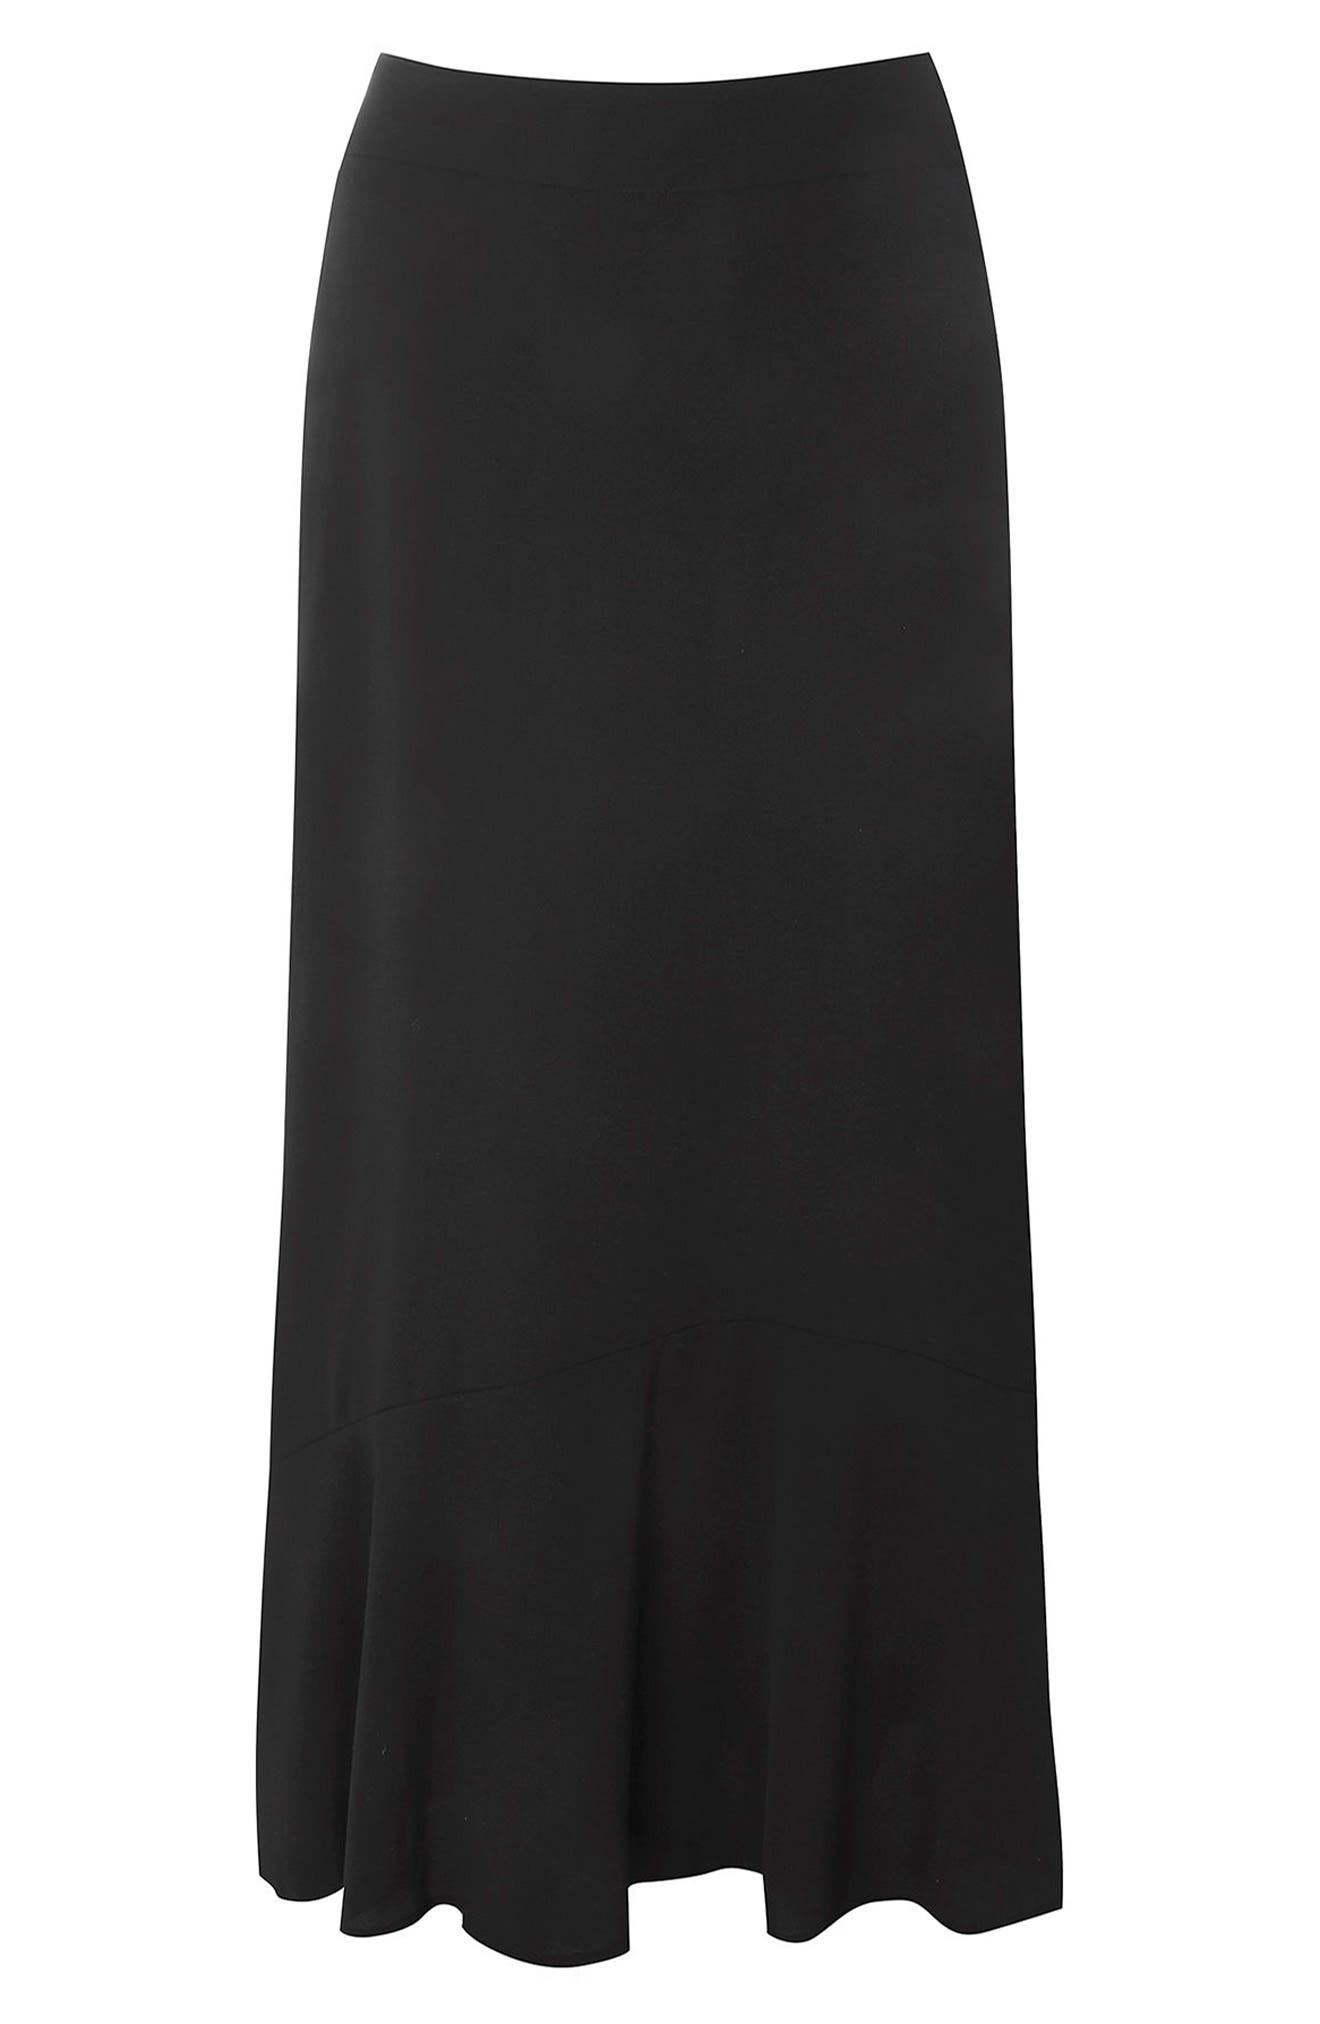 Alternate Image 1 Selected - Evans Tiered Pebble Crepe Maxi Skirt (Plus Size)